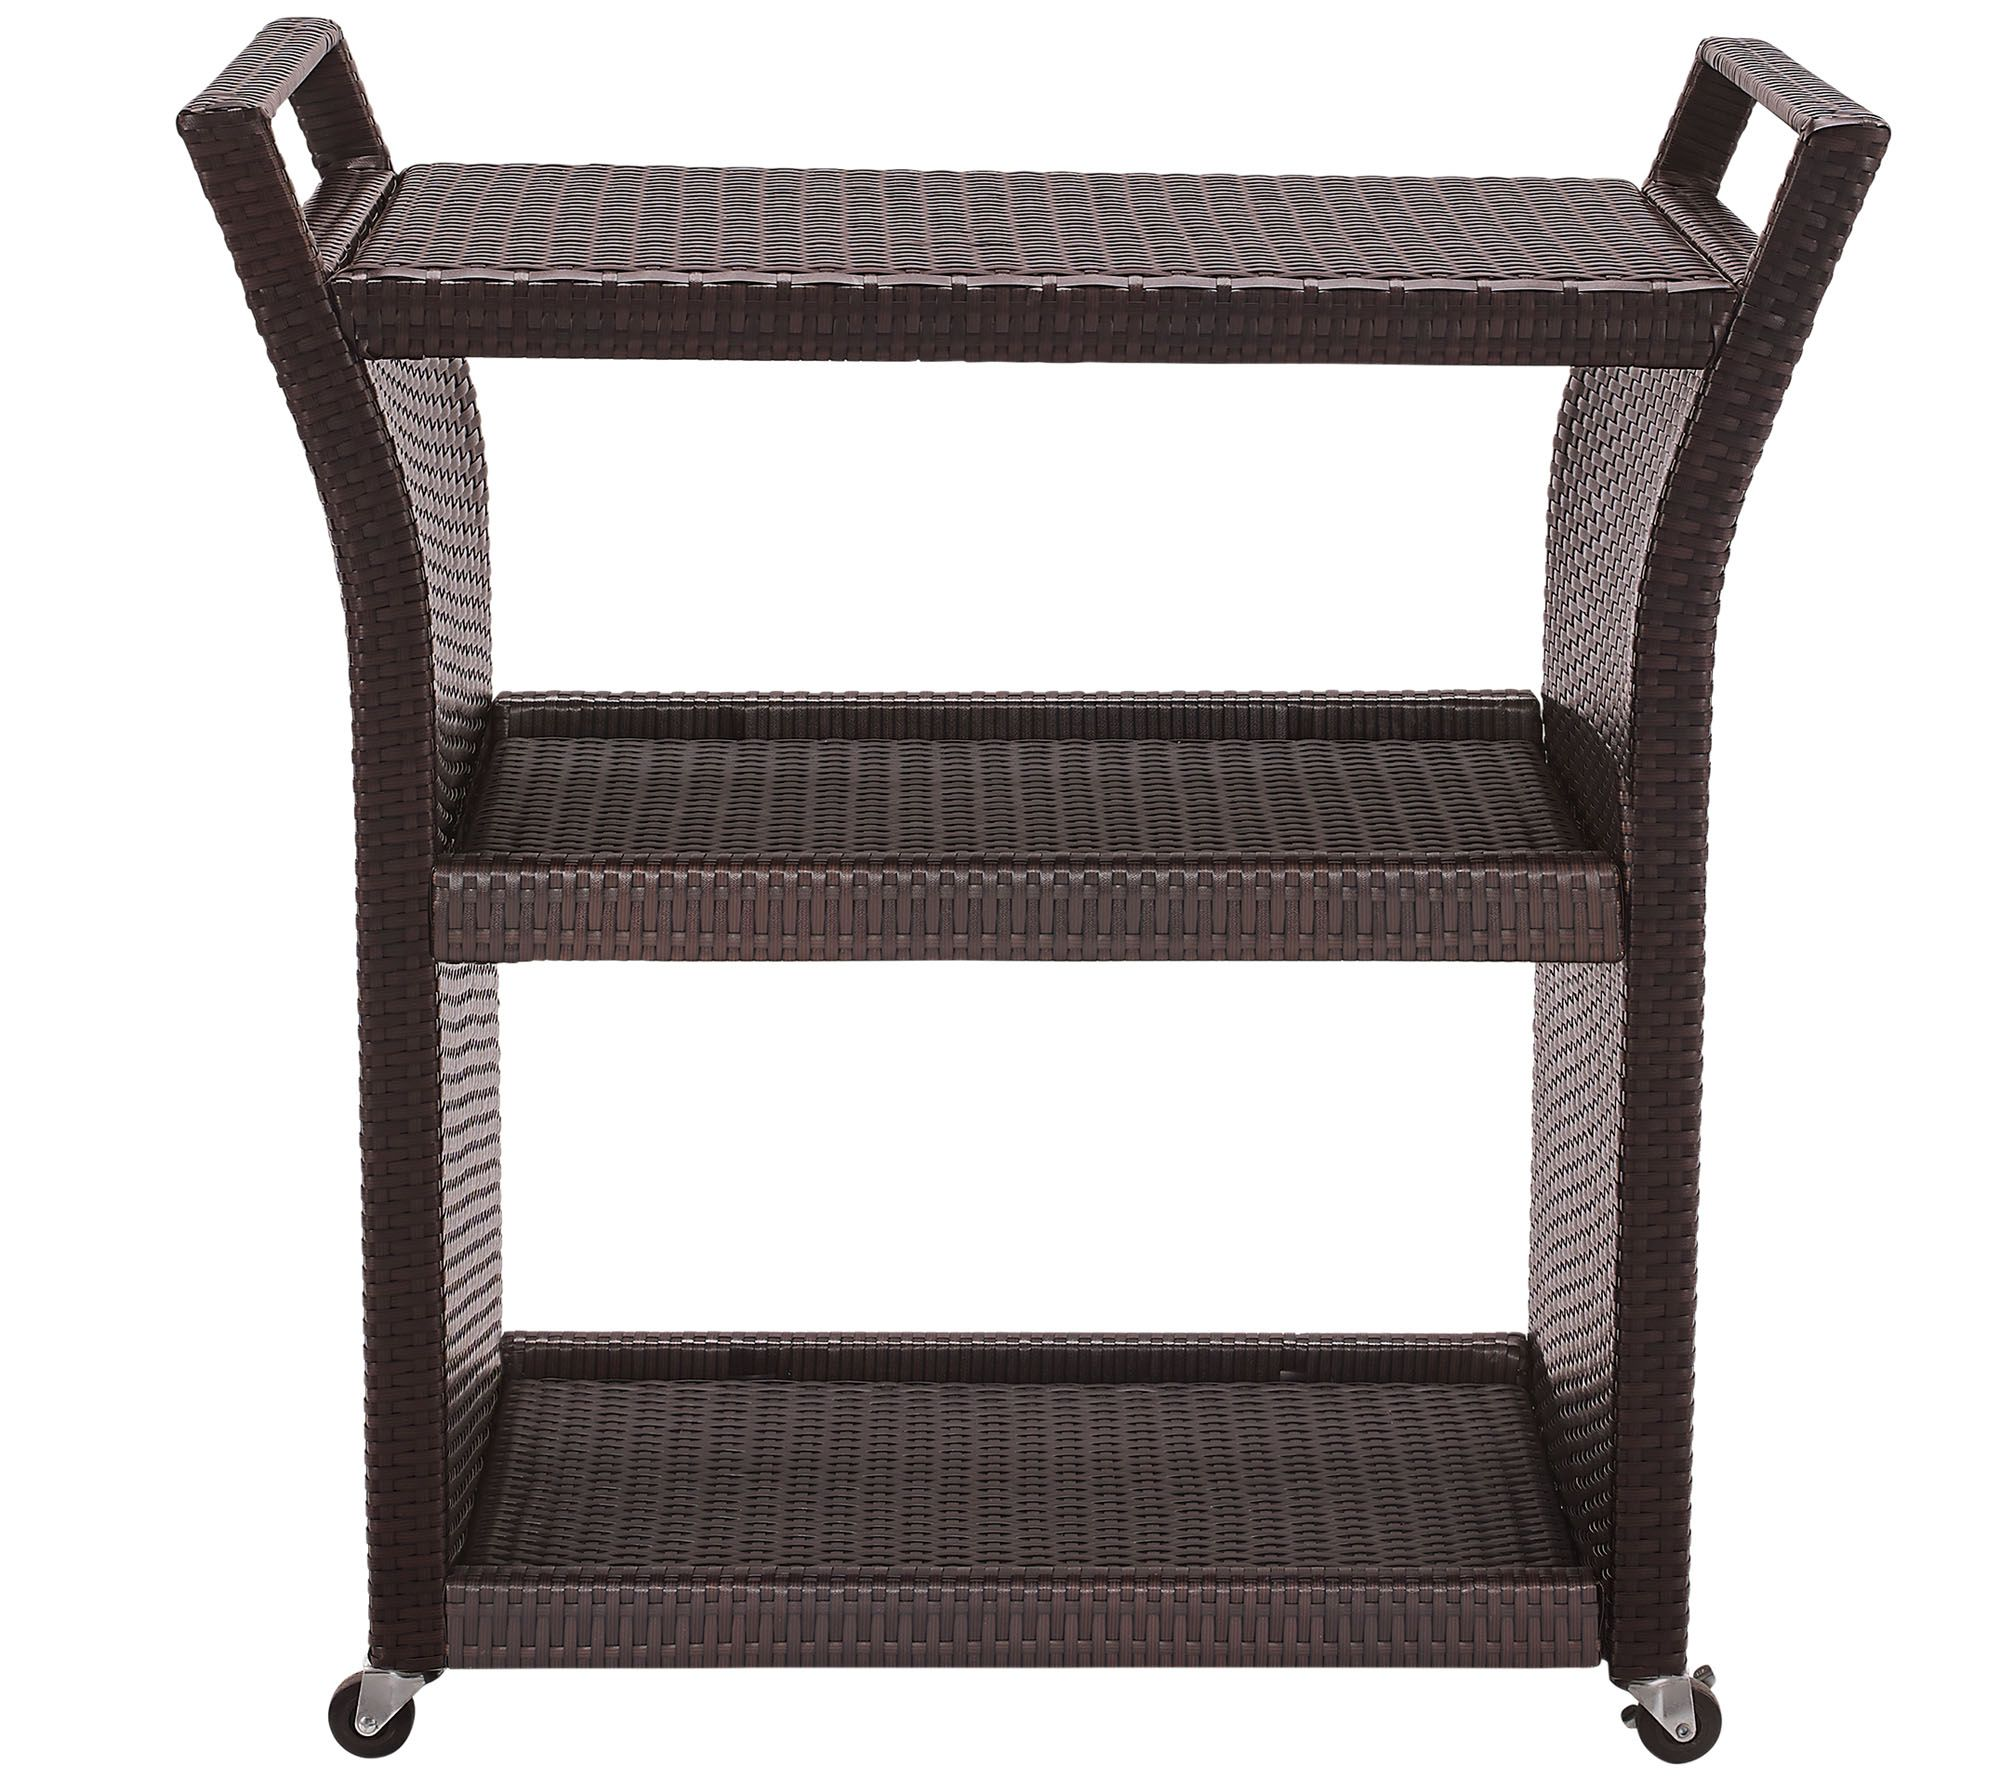 Palm Harbor Outdoor Wicker Bar Cart QVCcom : h288579 from www.qvc.com size 2000 x 1778 jpeg 361kB